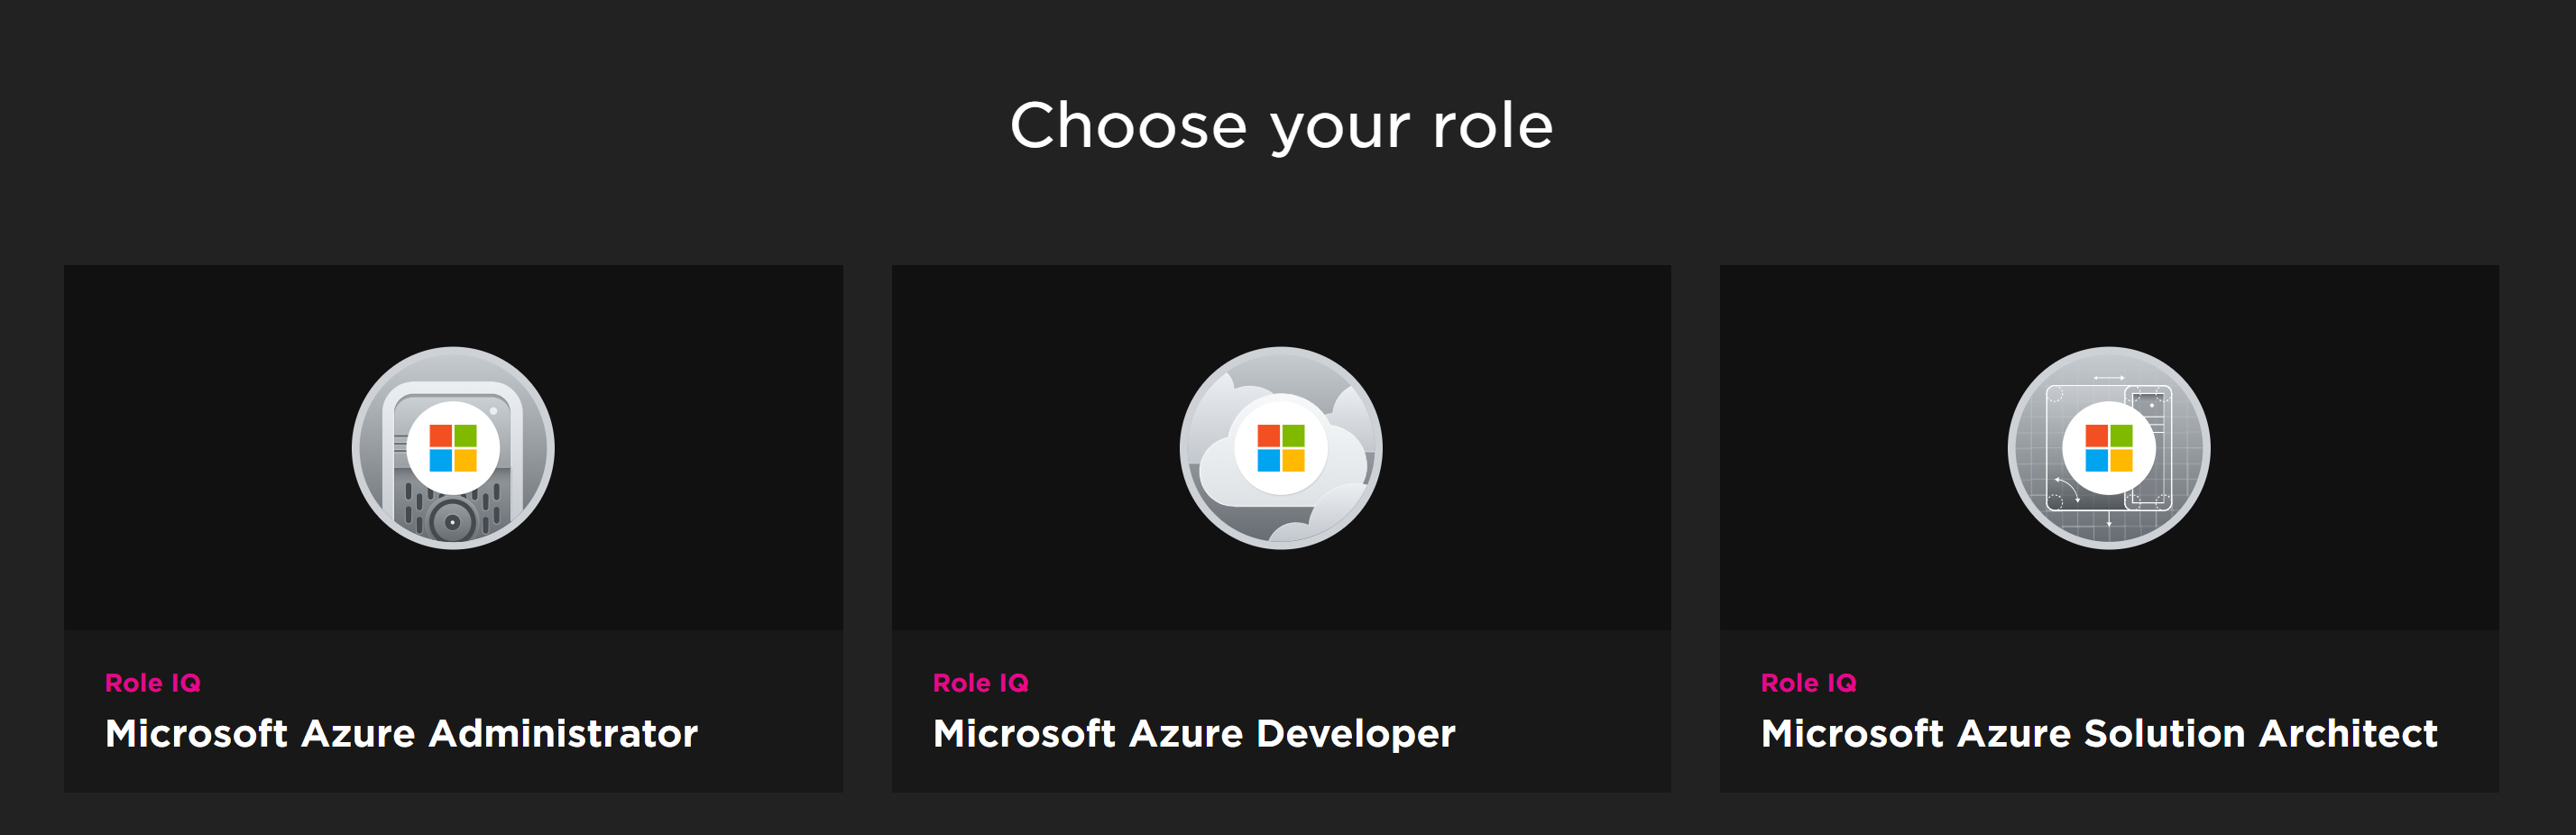 Pluralsight 12 months free course to Microsoft Azure for Students